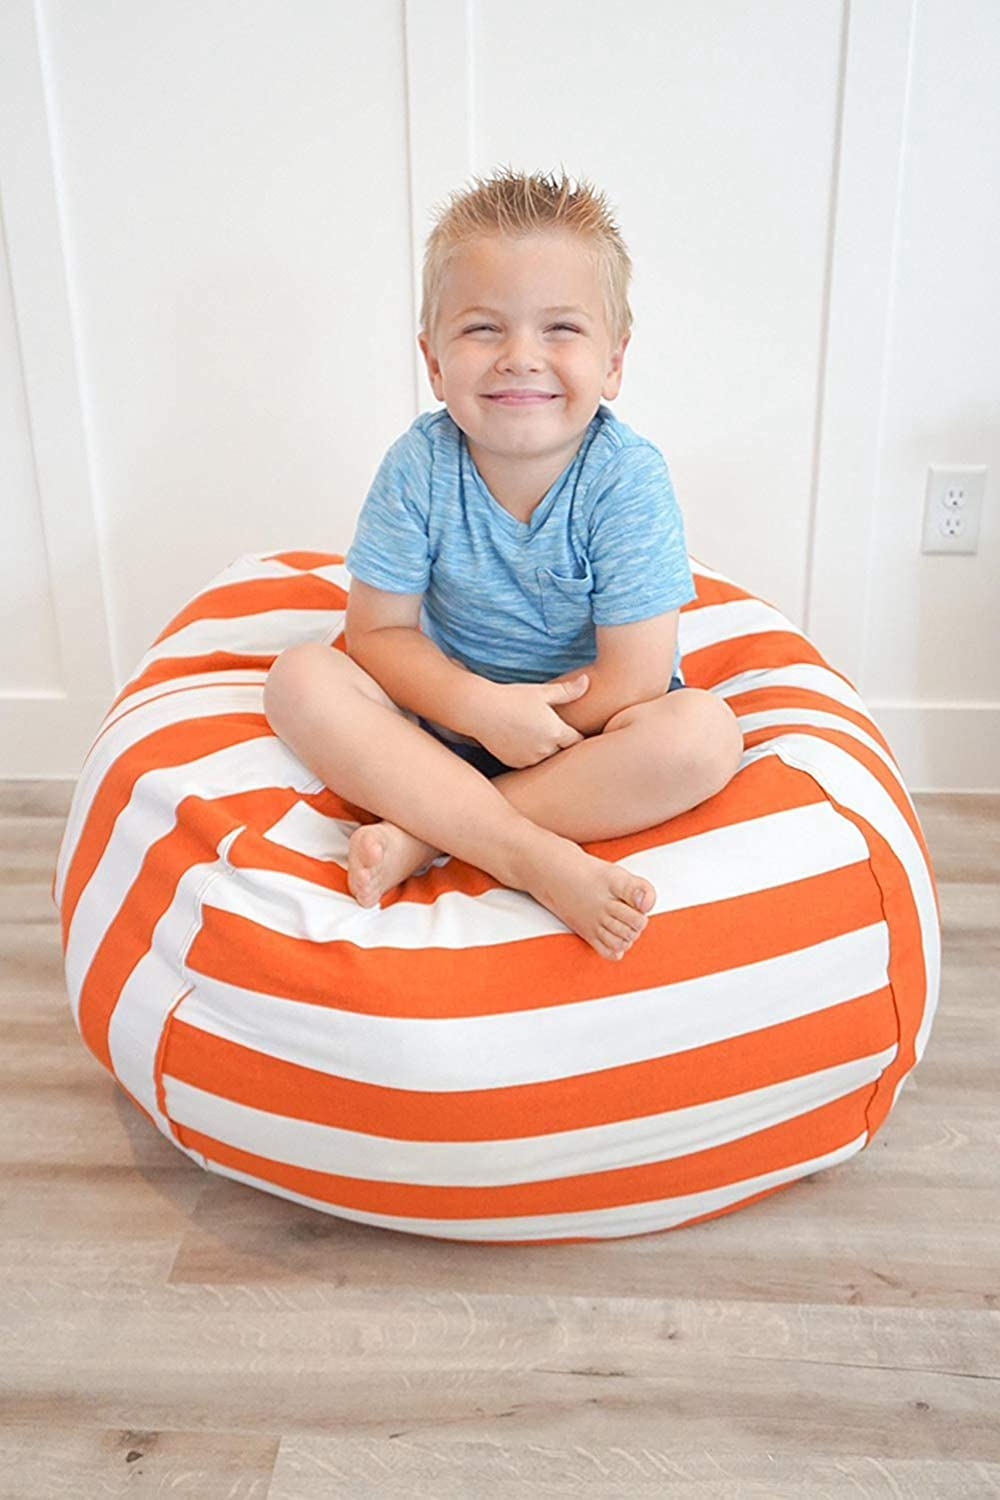 38, Orange + White Household Storage Bag Large Capacity Canvas Bean Bag Stuffed Animal Storage Bean Bag Chair for Kids vTopTek Stuff n Sit